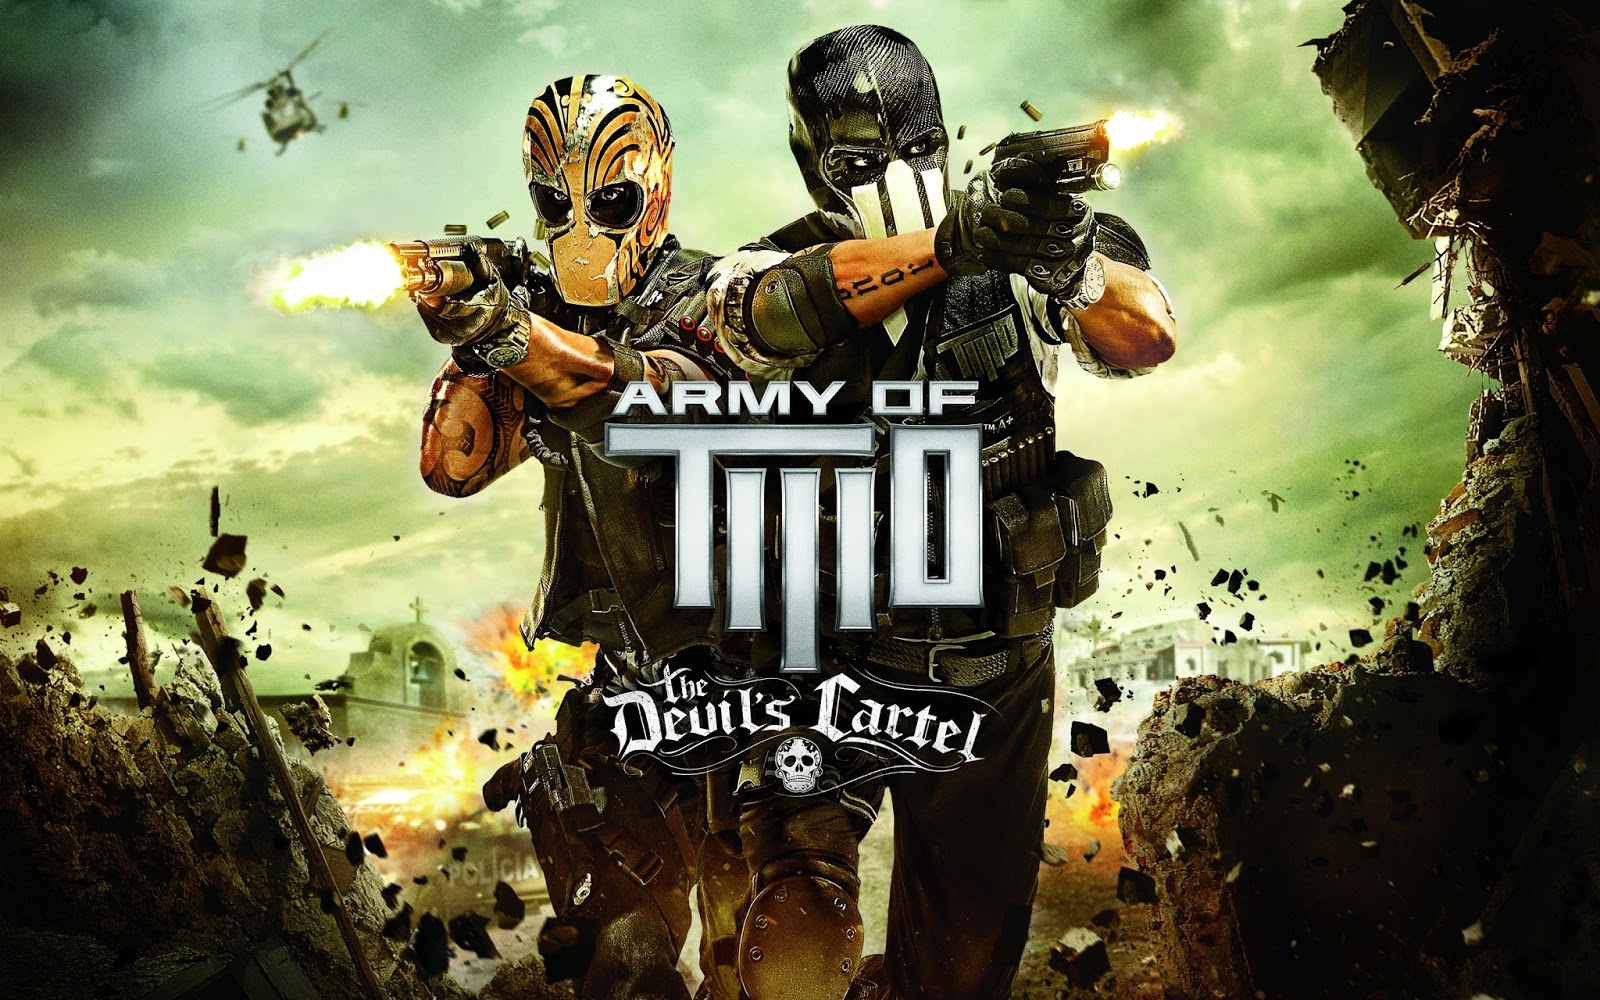 Army of two the devils cartel for pc download free torrents games army of two the devils cartel for pc free torrent army of two the devils cartel for pc free torrents games gownload army of two the devils cartel for voltagebd Image collections